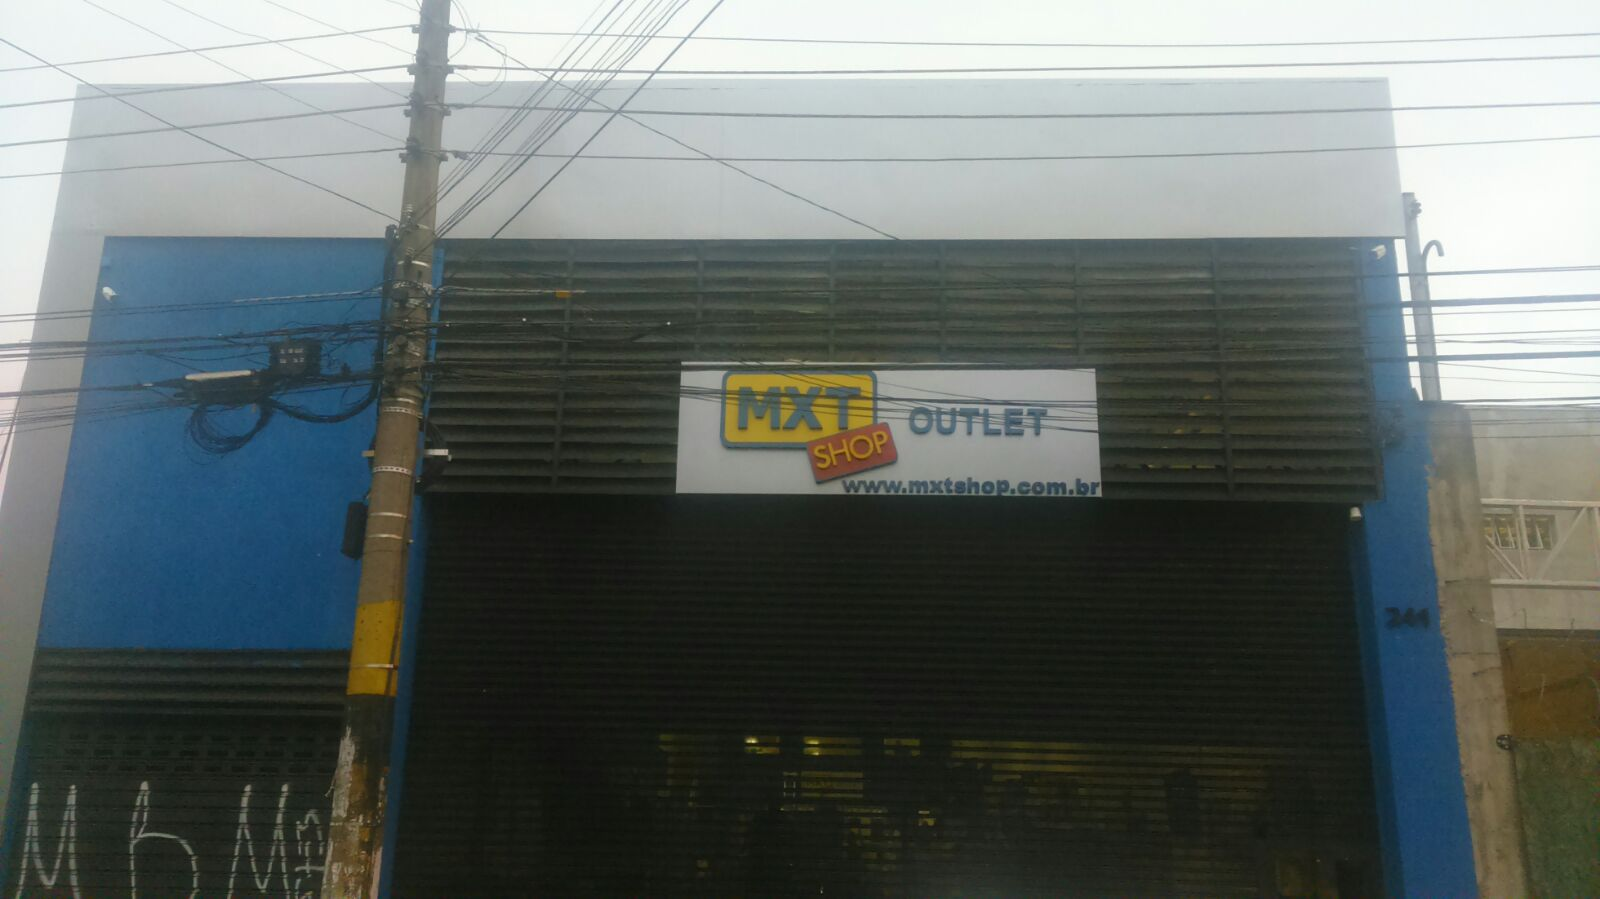 MXT Shop Outlet